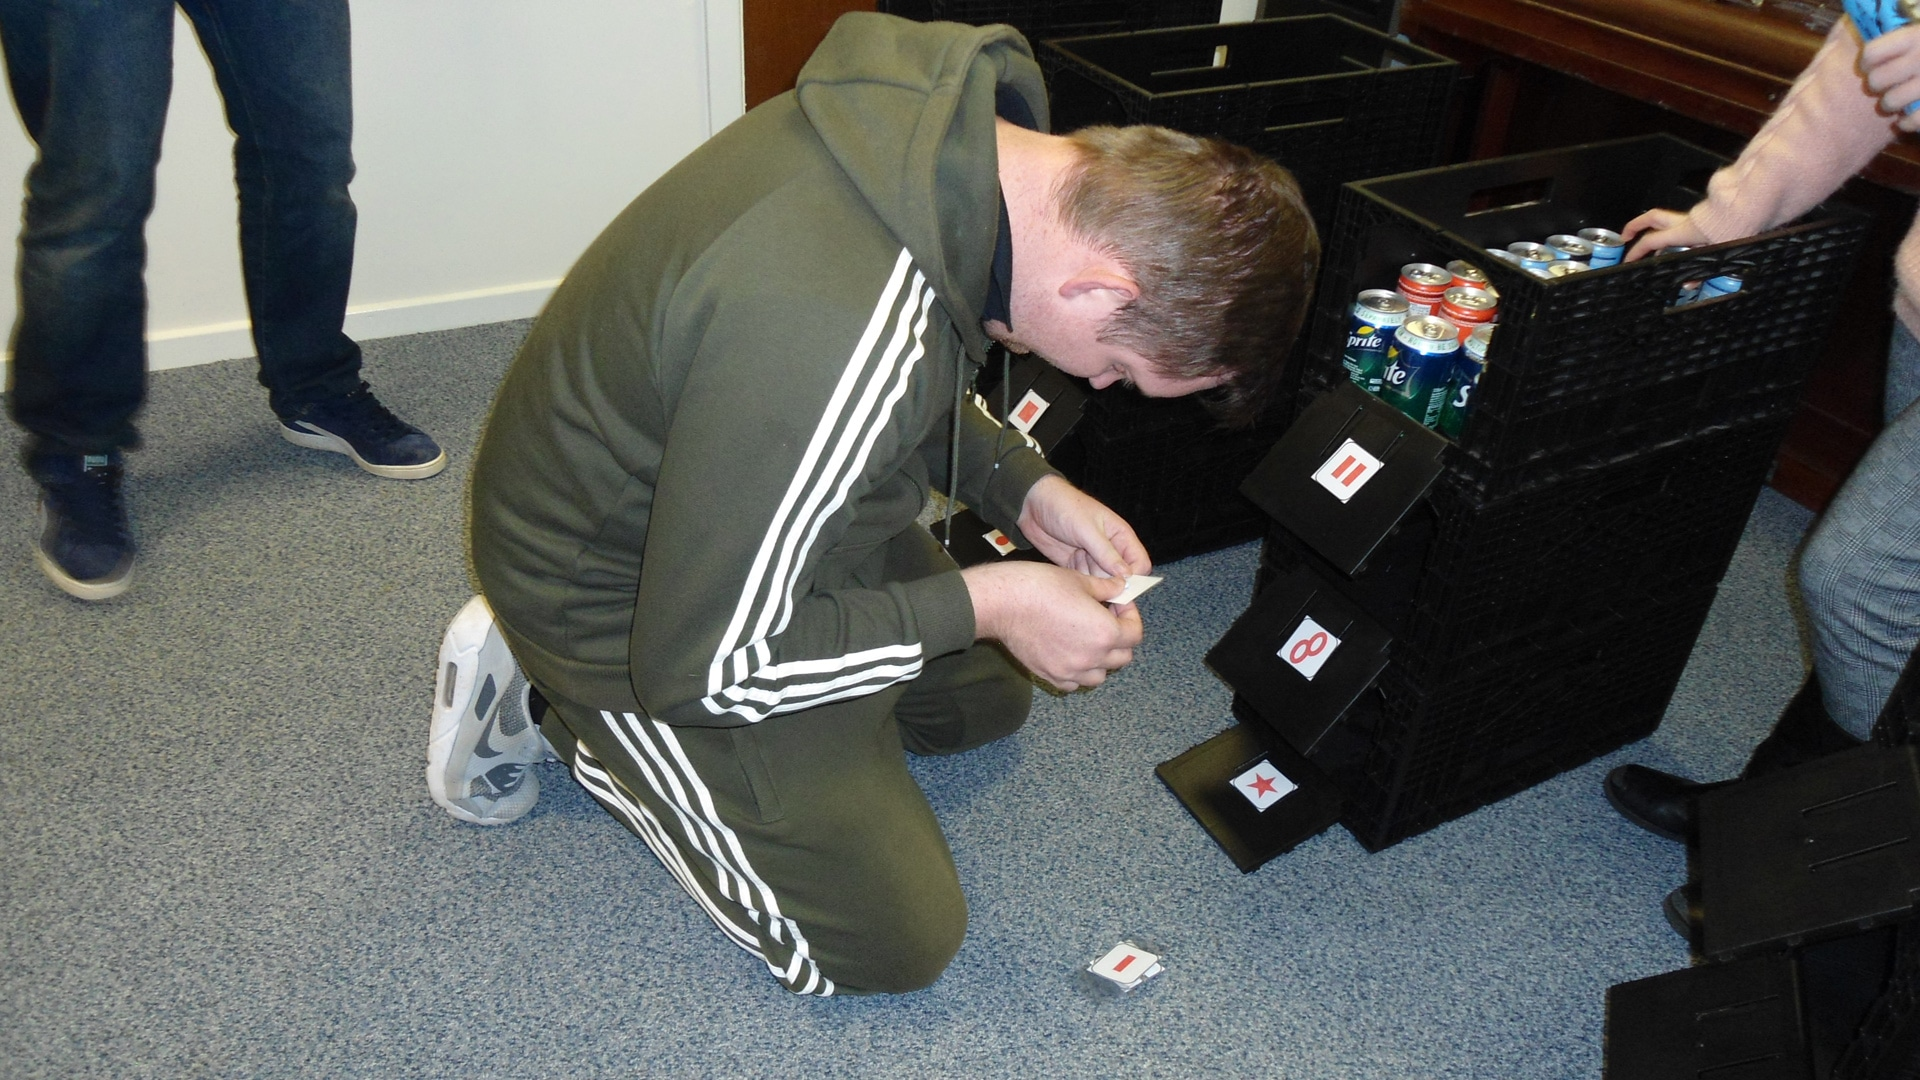 Magpies member looking at labels on crates of fizzy drinks